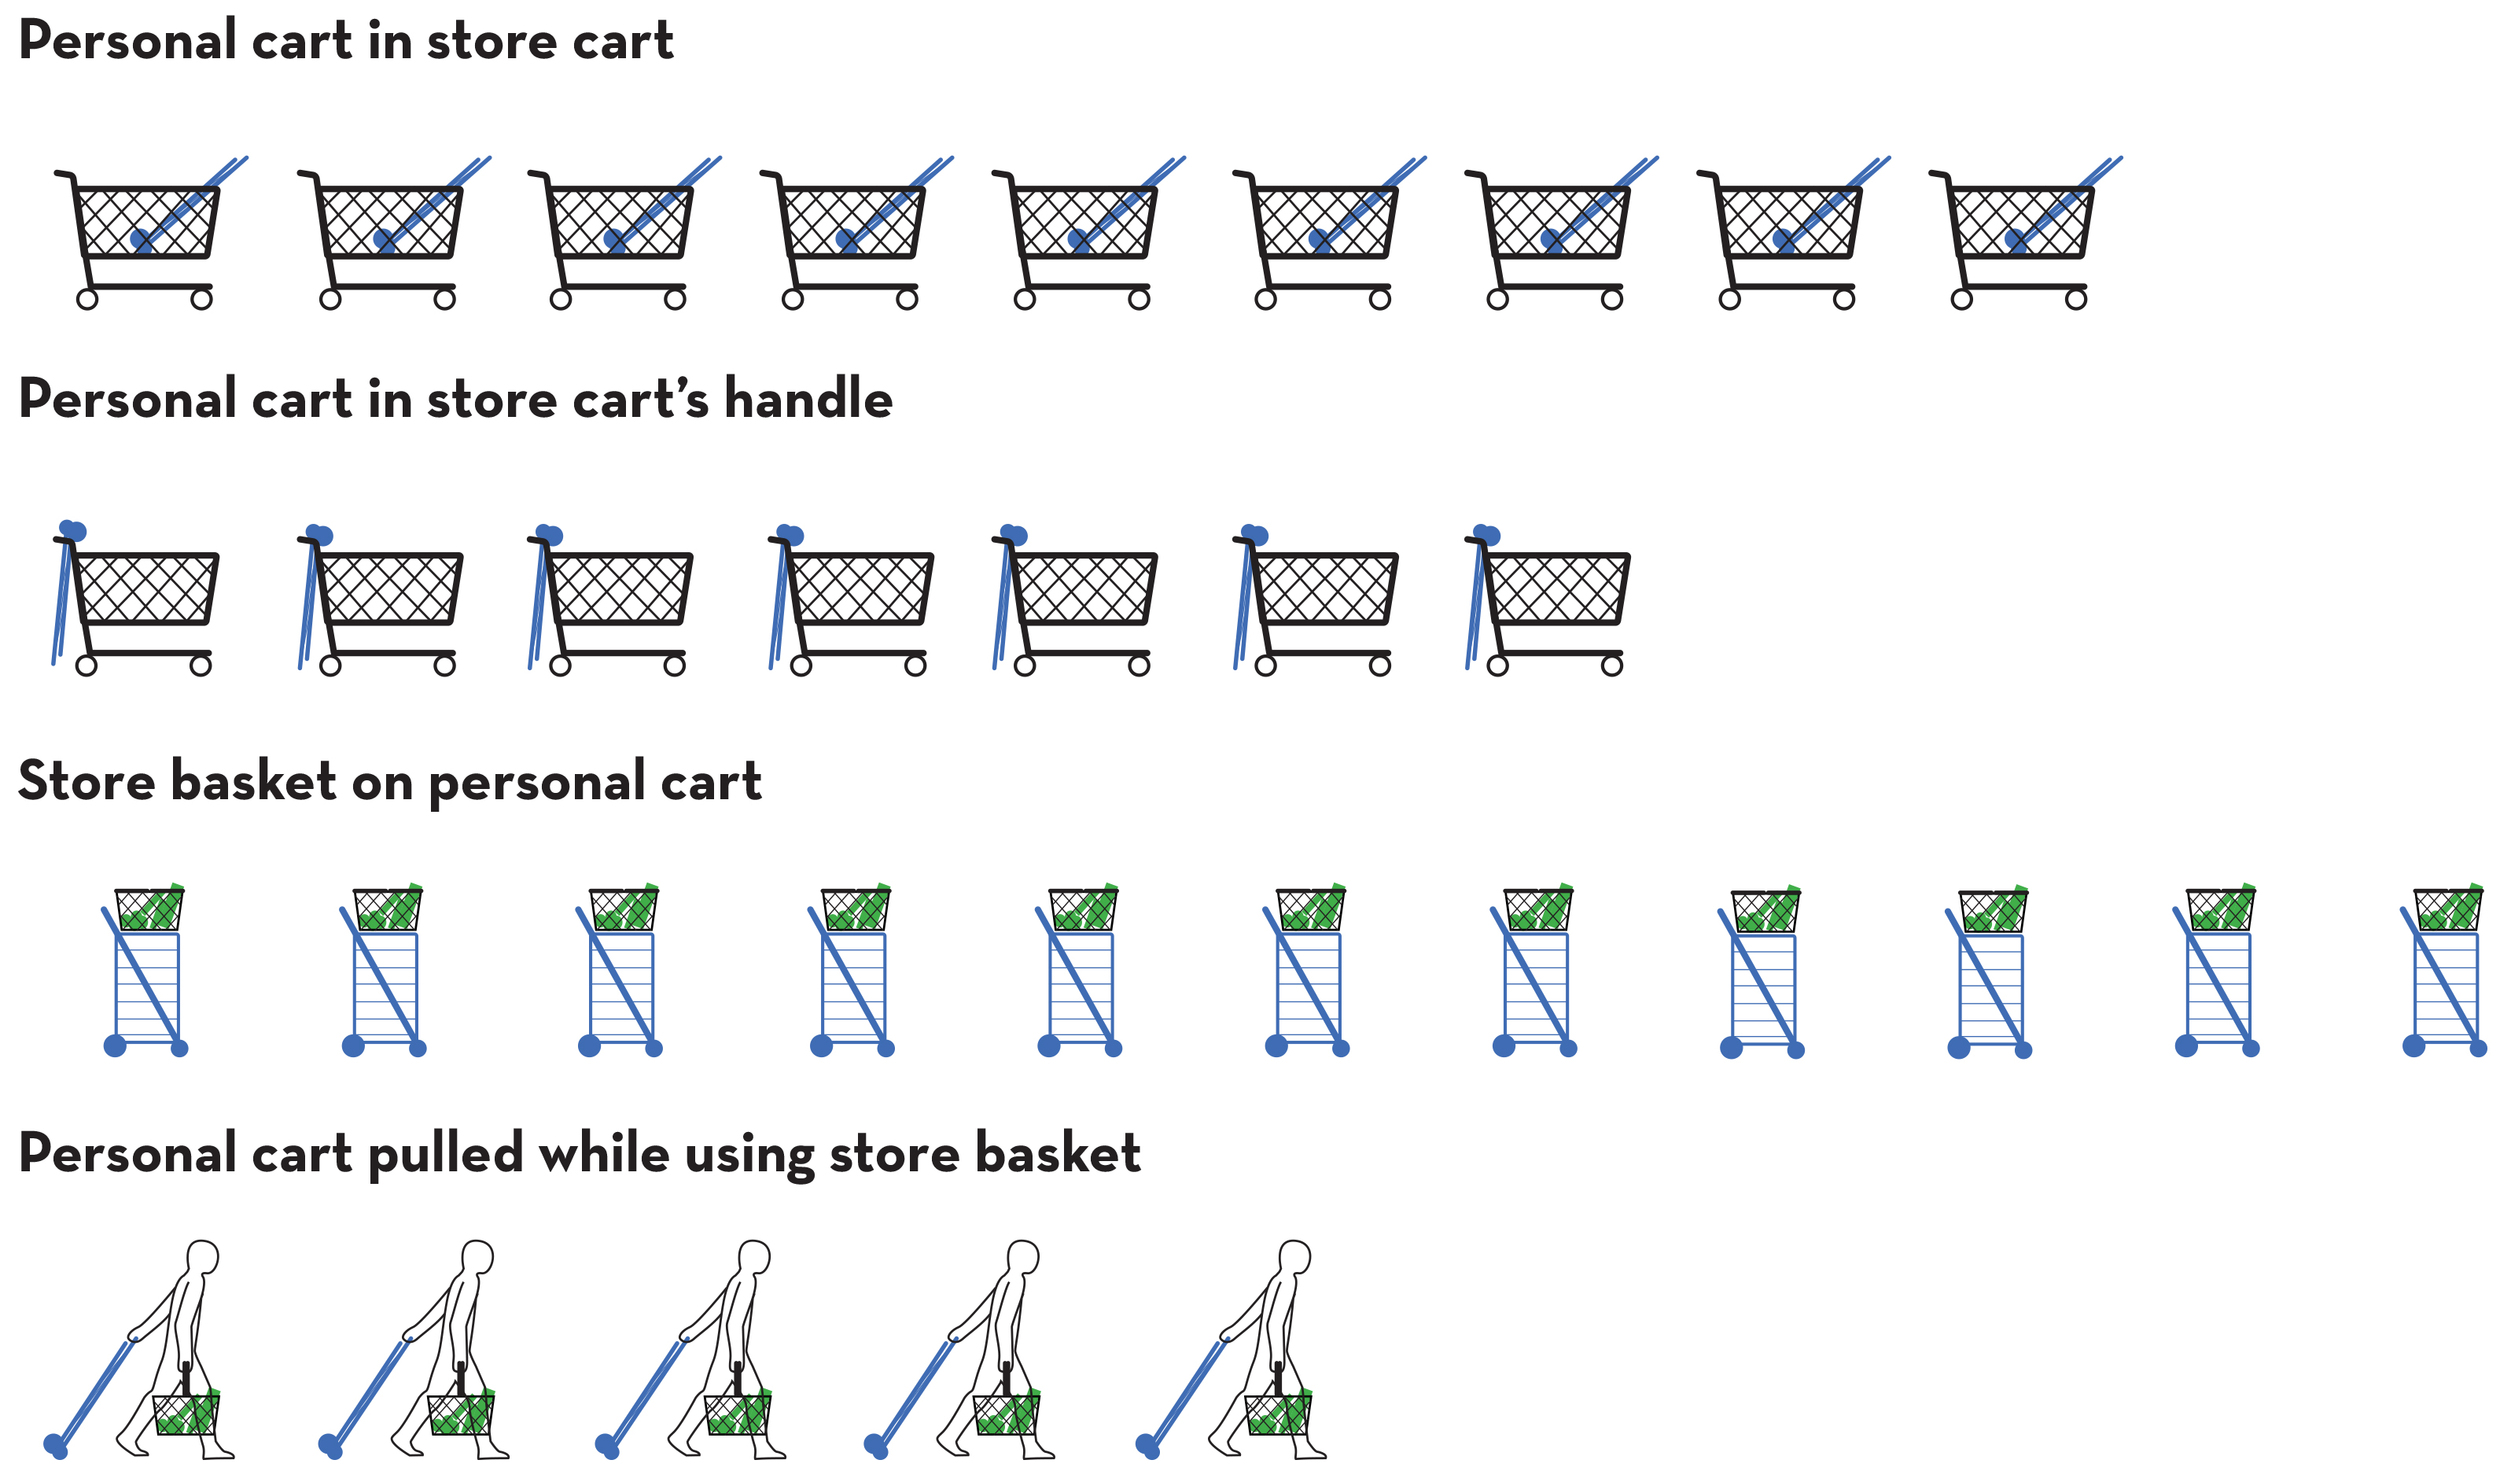 grocery carts data.png